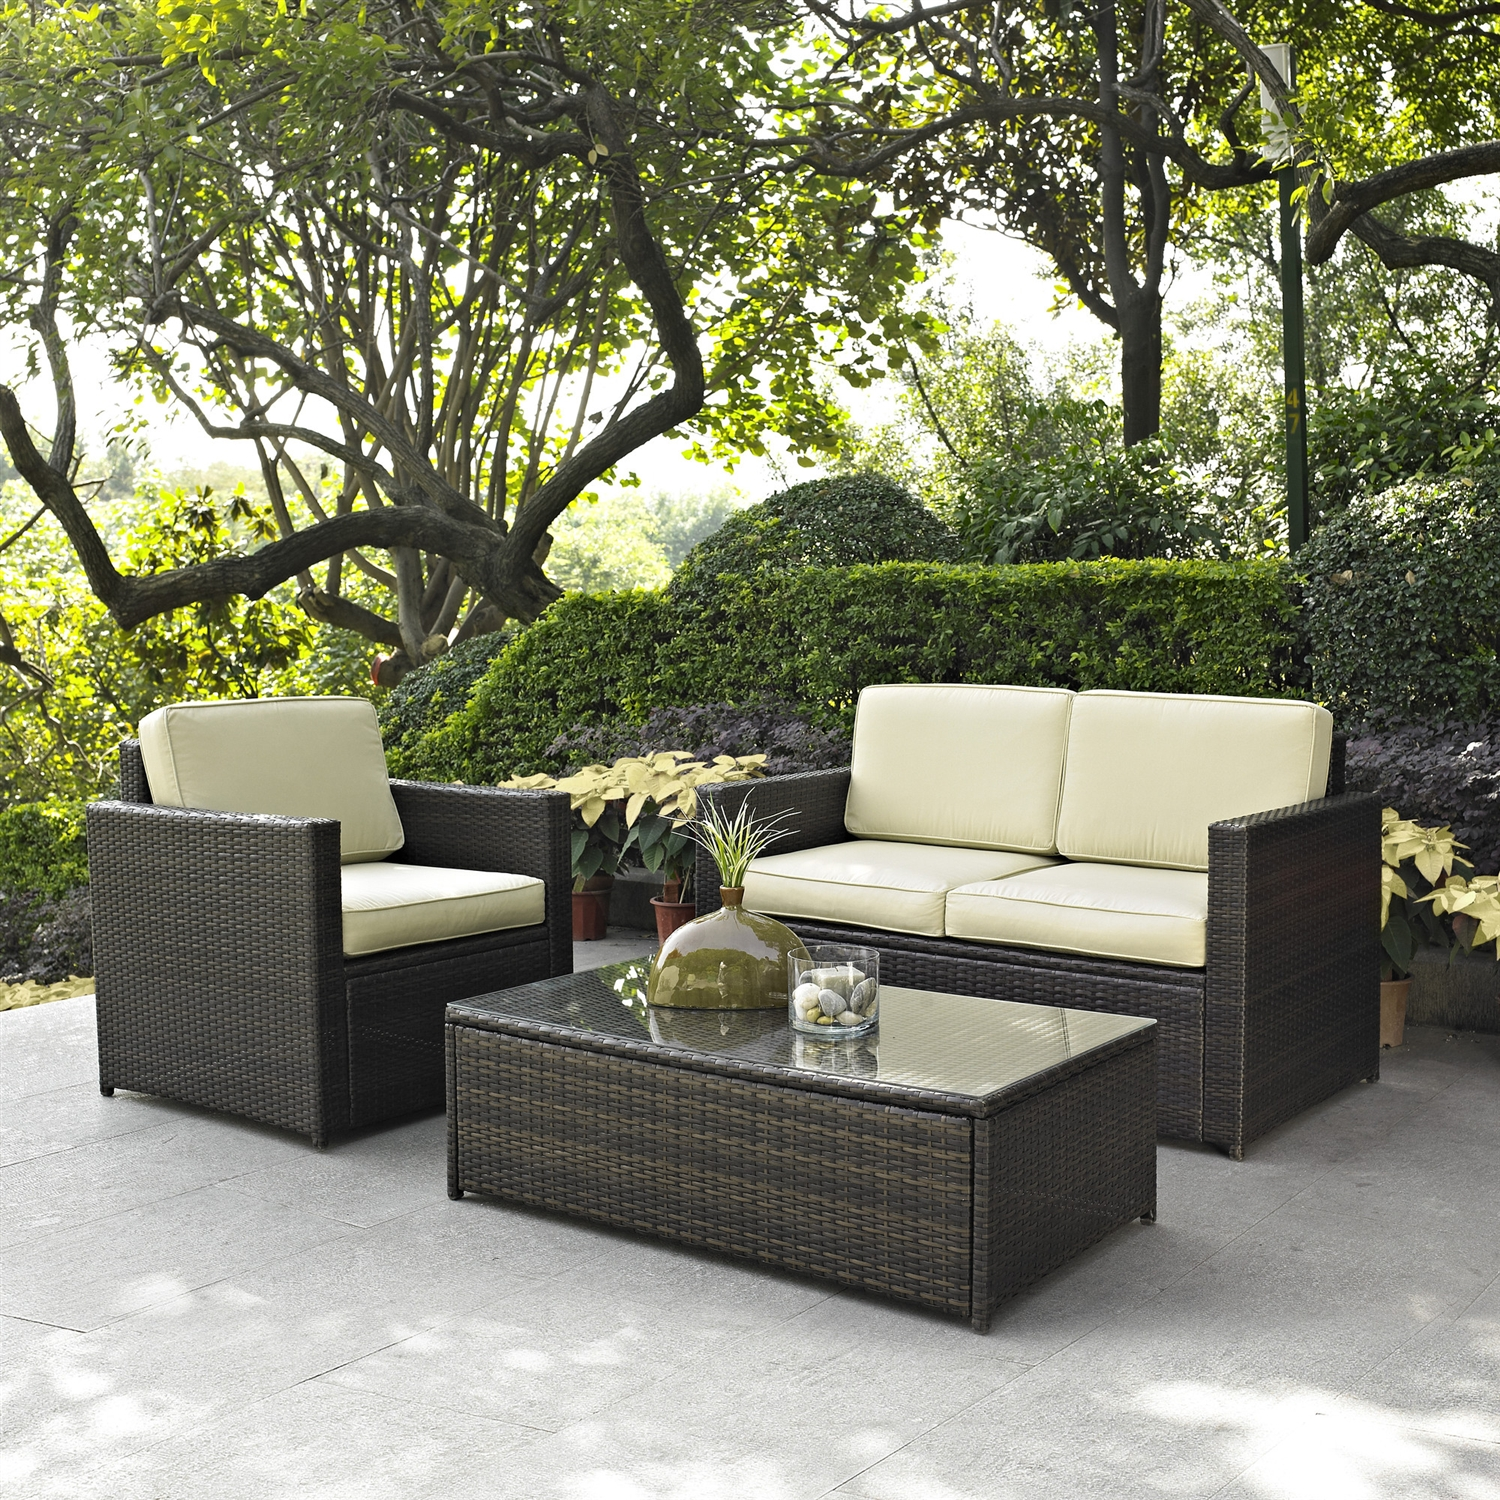 furniture seat rattan specialsoutsunny loveseat wicker garden brown deluxe day canada sofa cushioned patio outdoor outsunny living